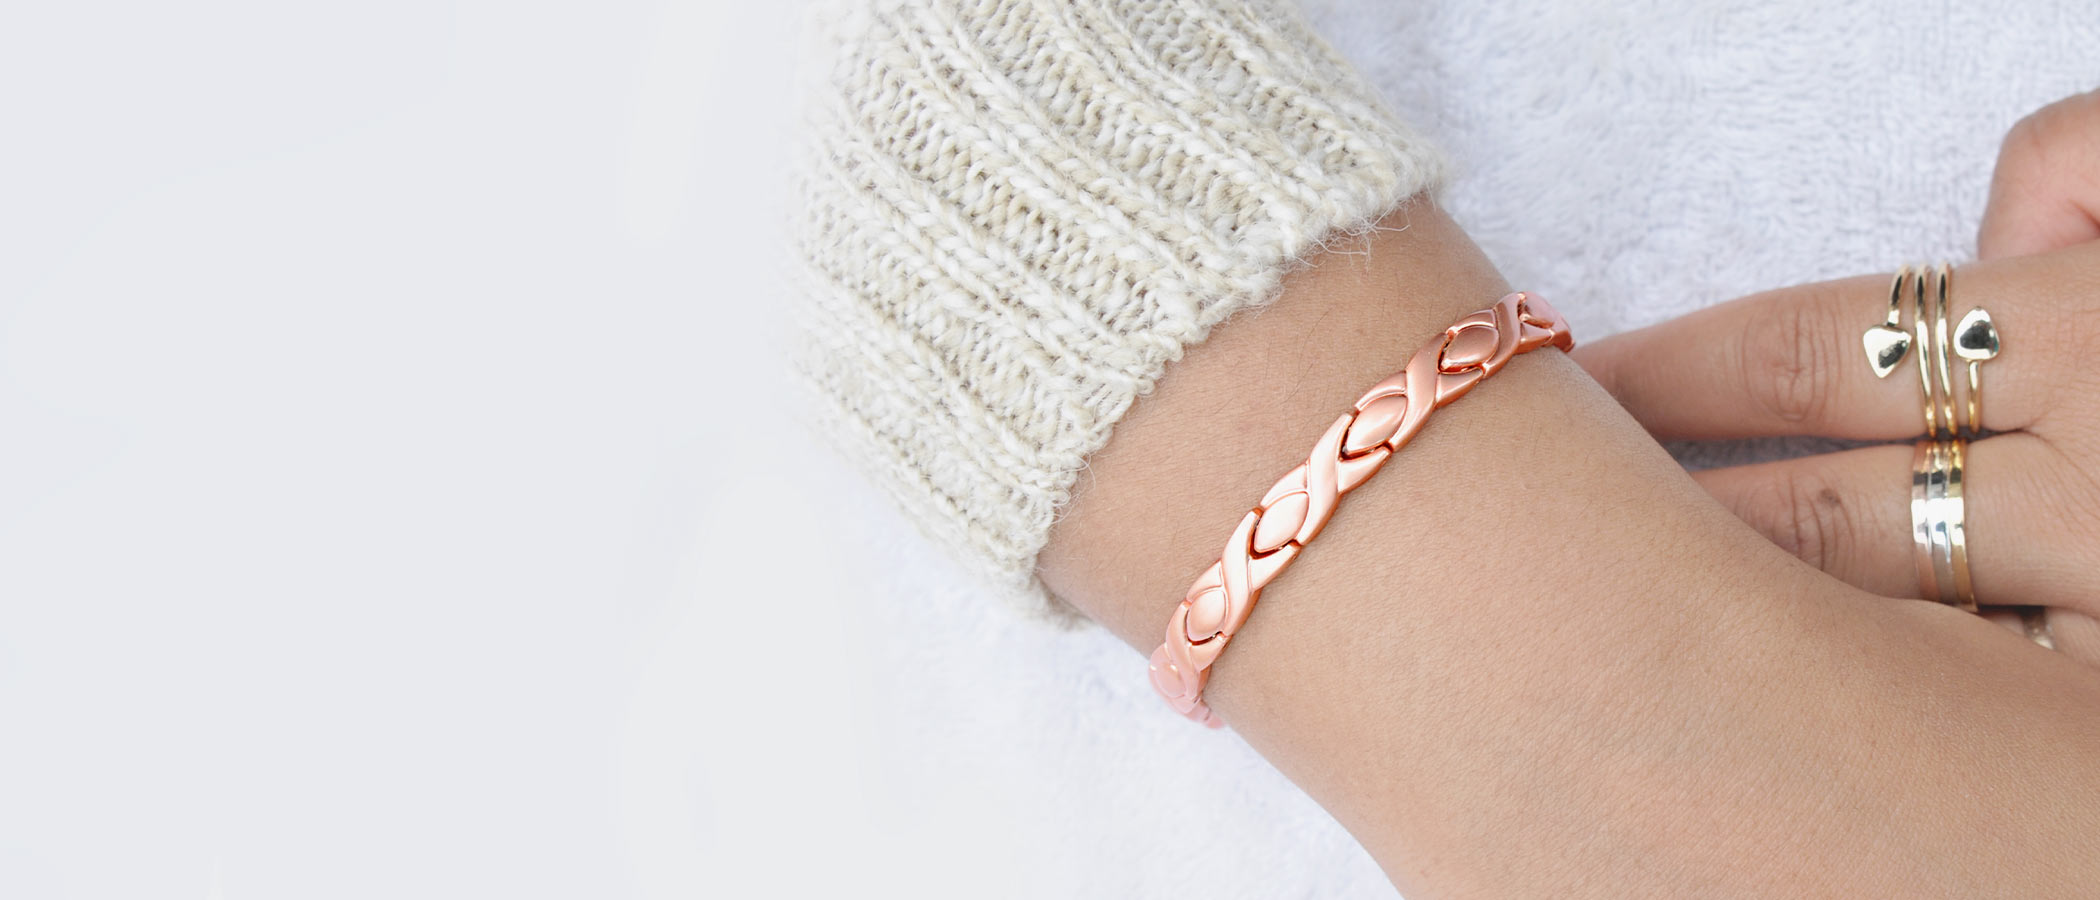 cleaning copper bracelets and bangles